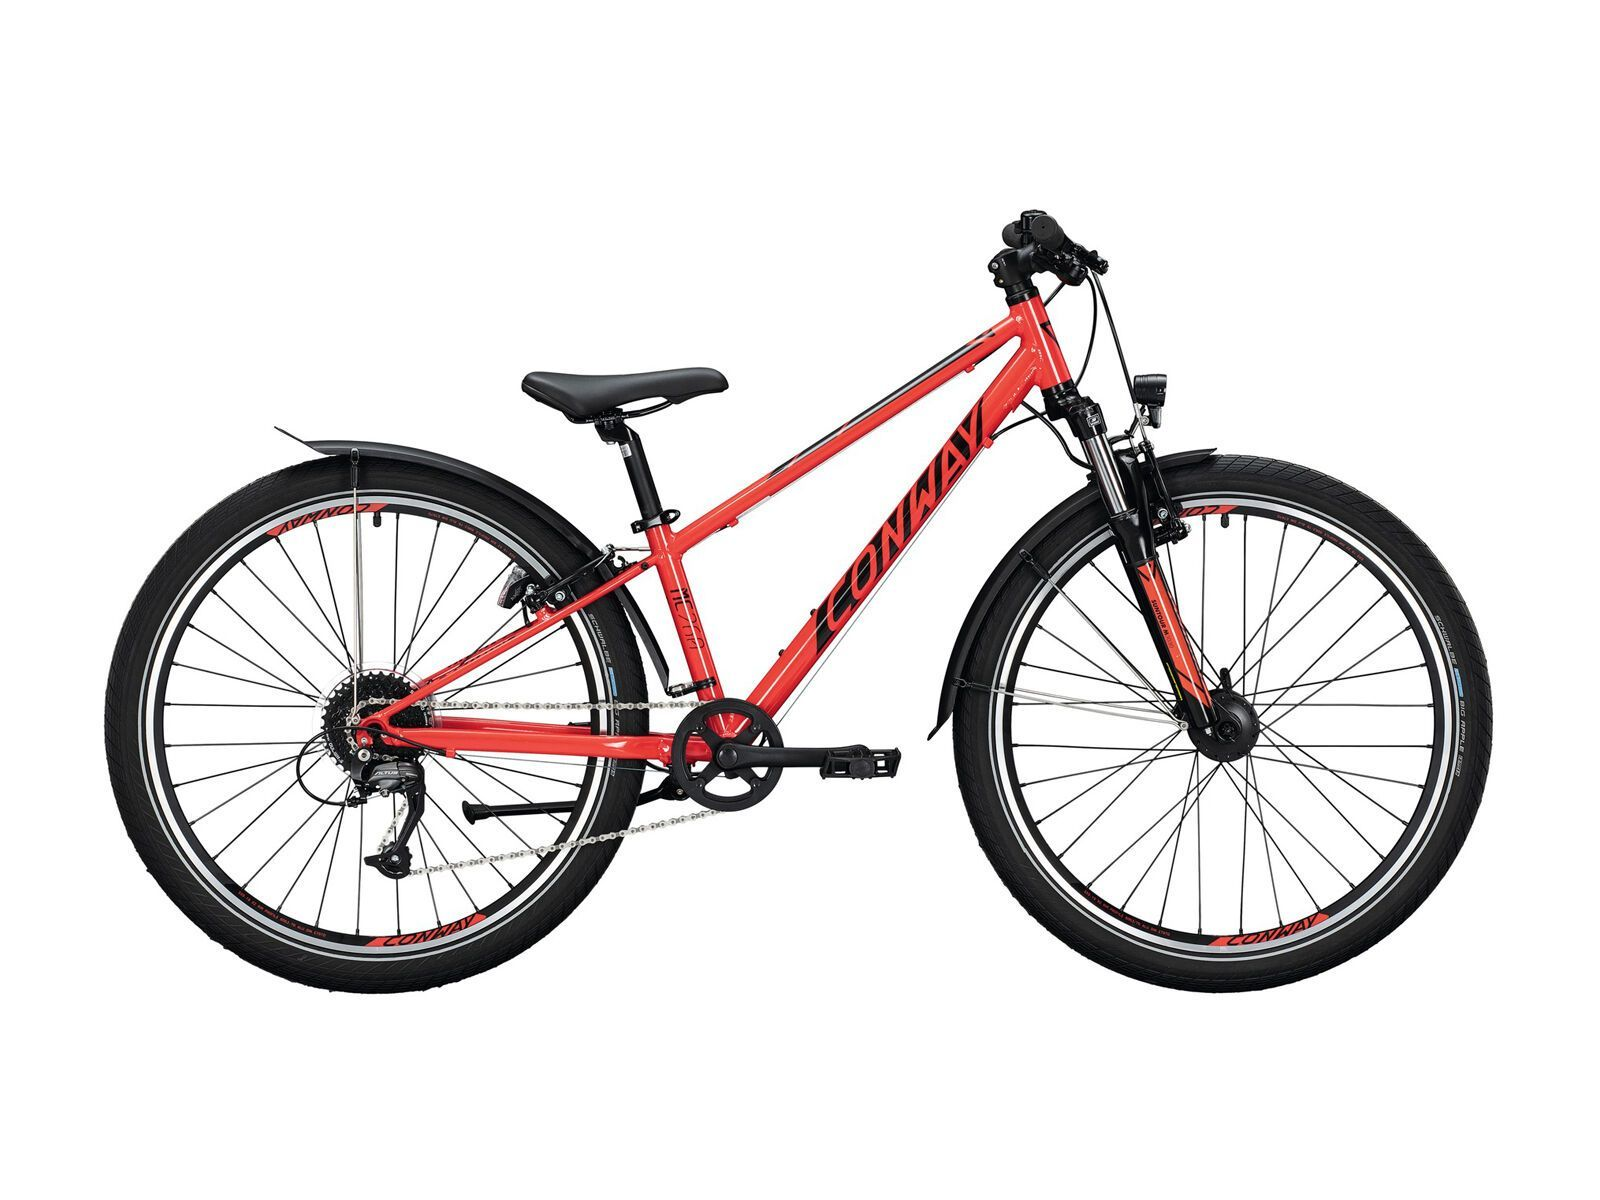 Conway MC 260 Suspension 2021, red/black - Kinderfahrrad, Größe 31 cm 02875623